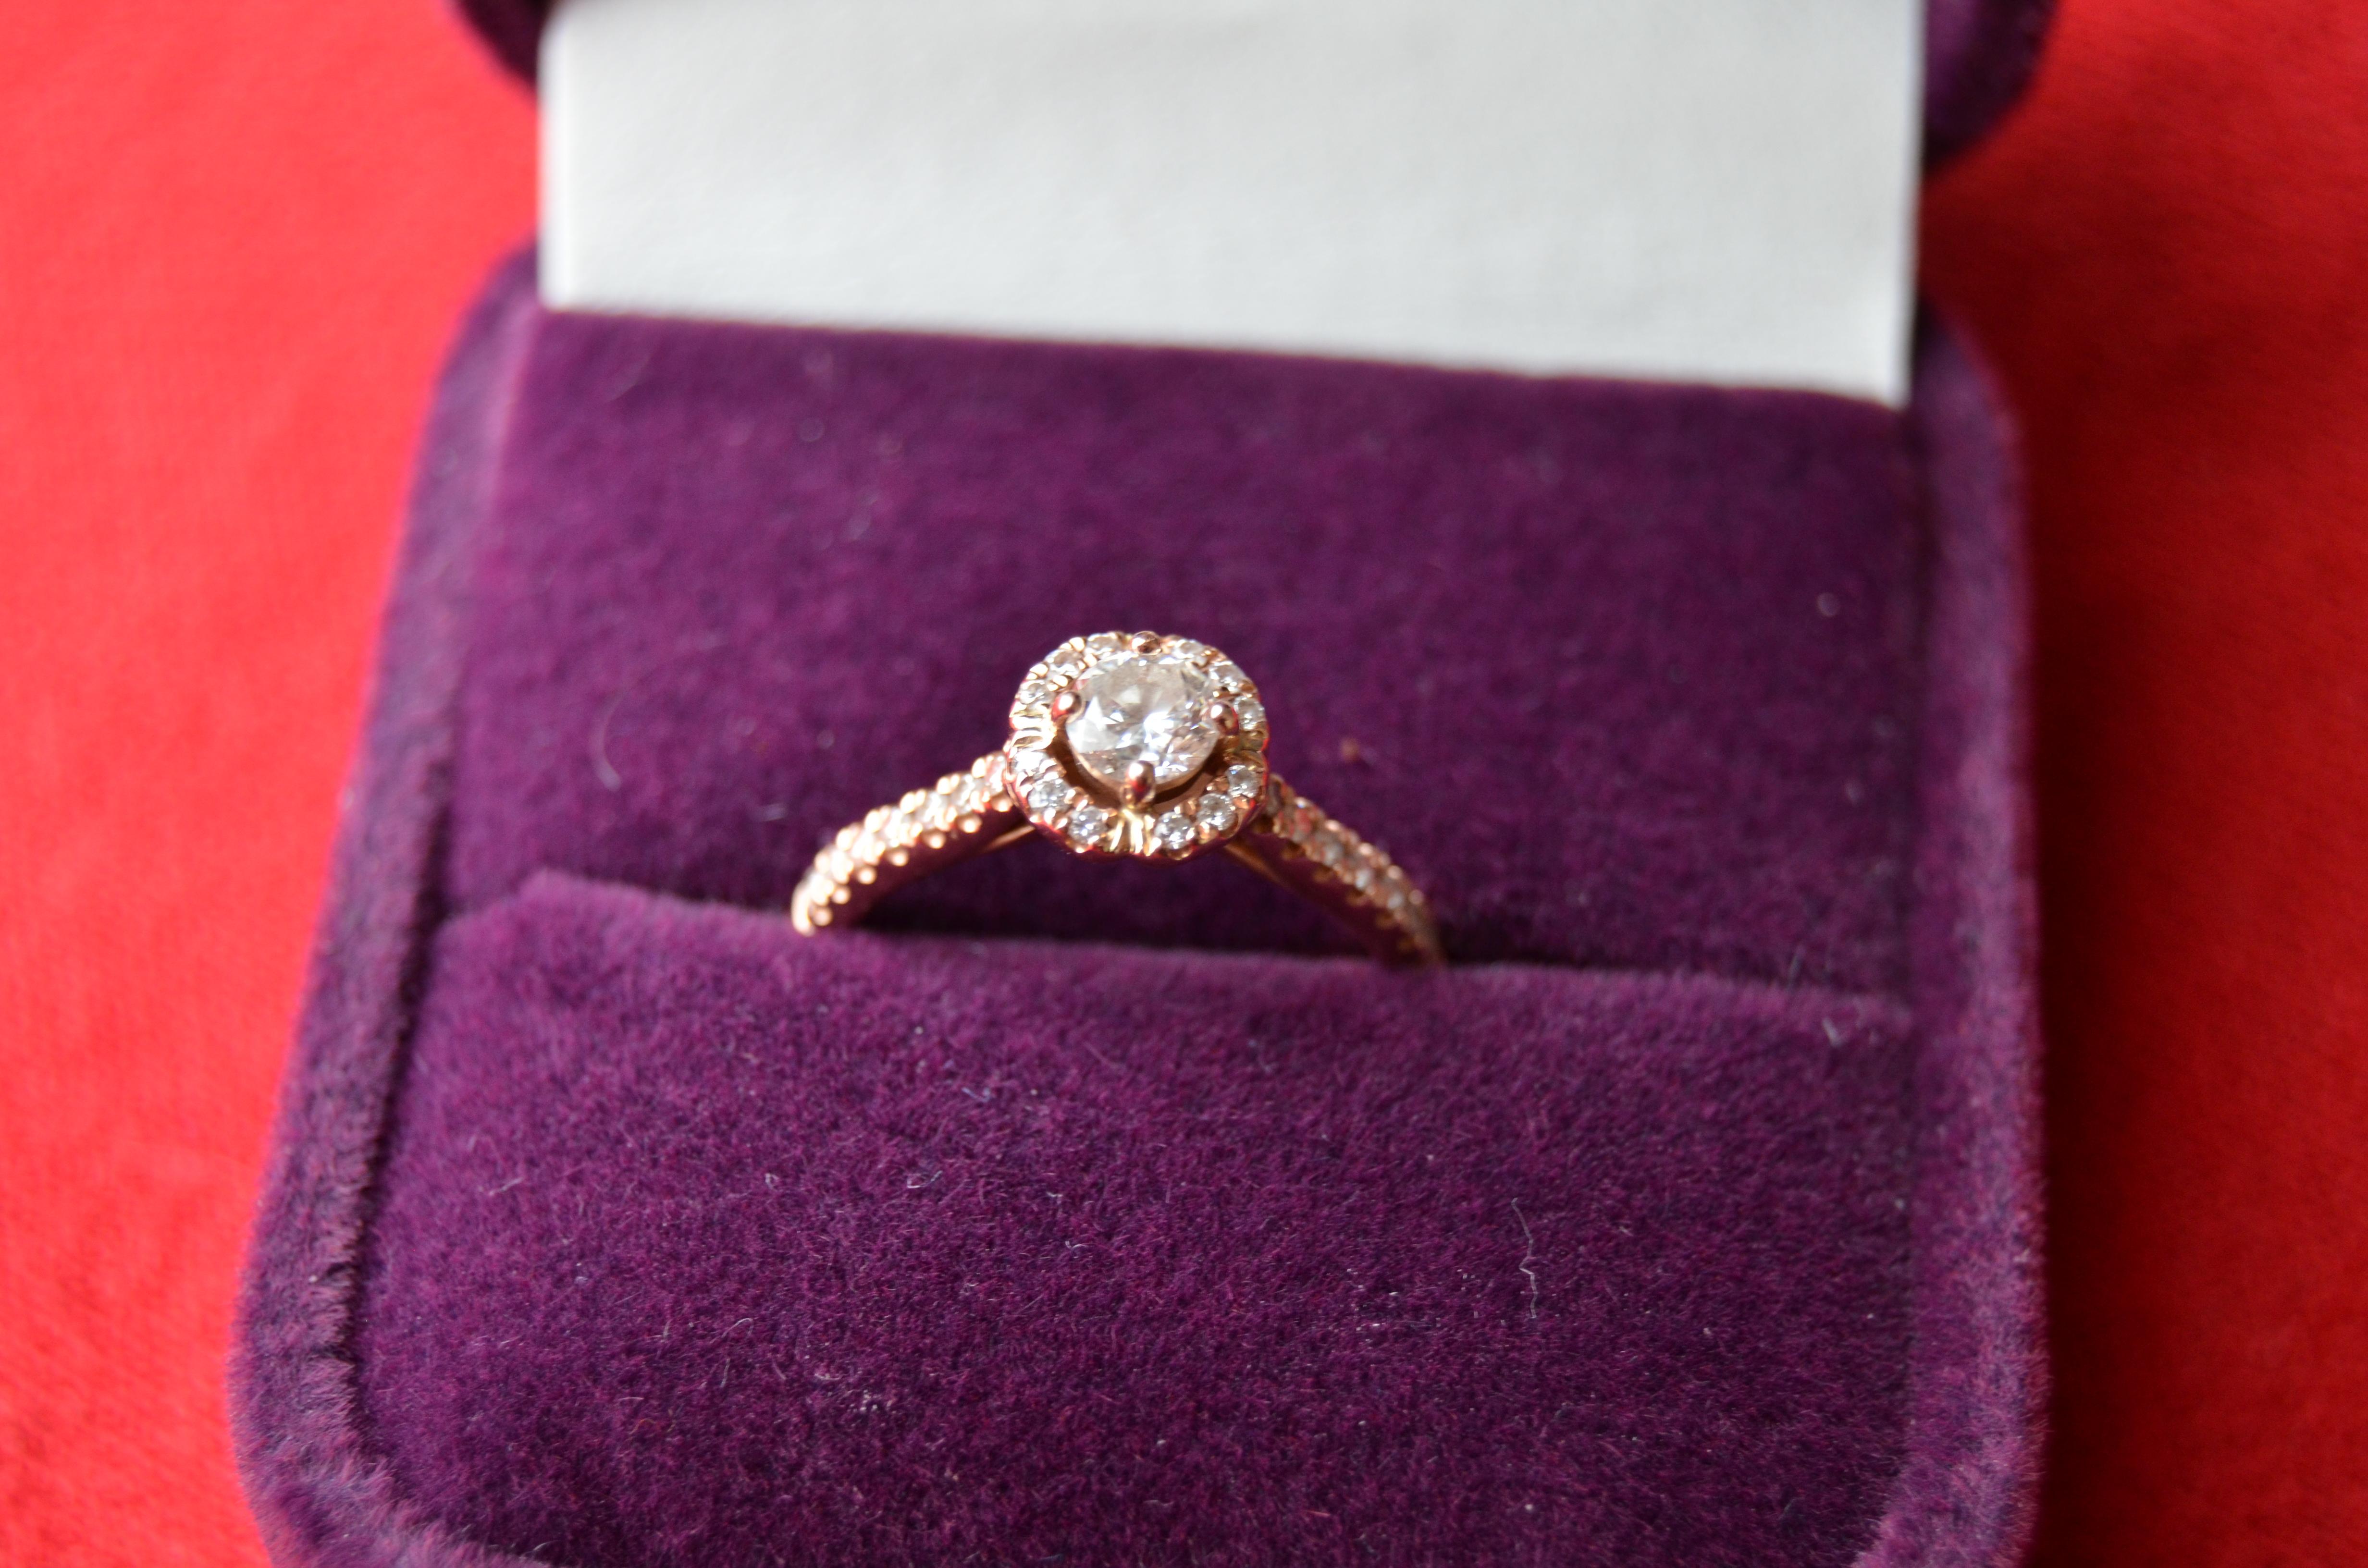 Engagement ring size 5.5